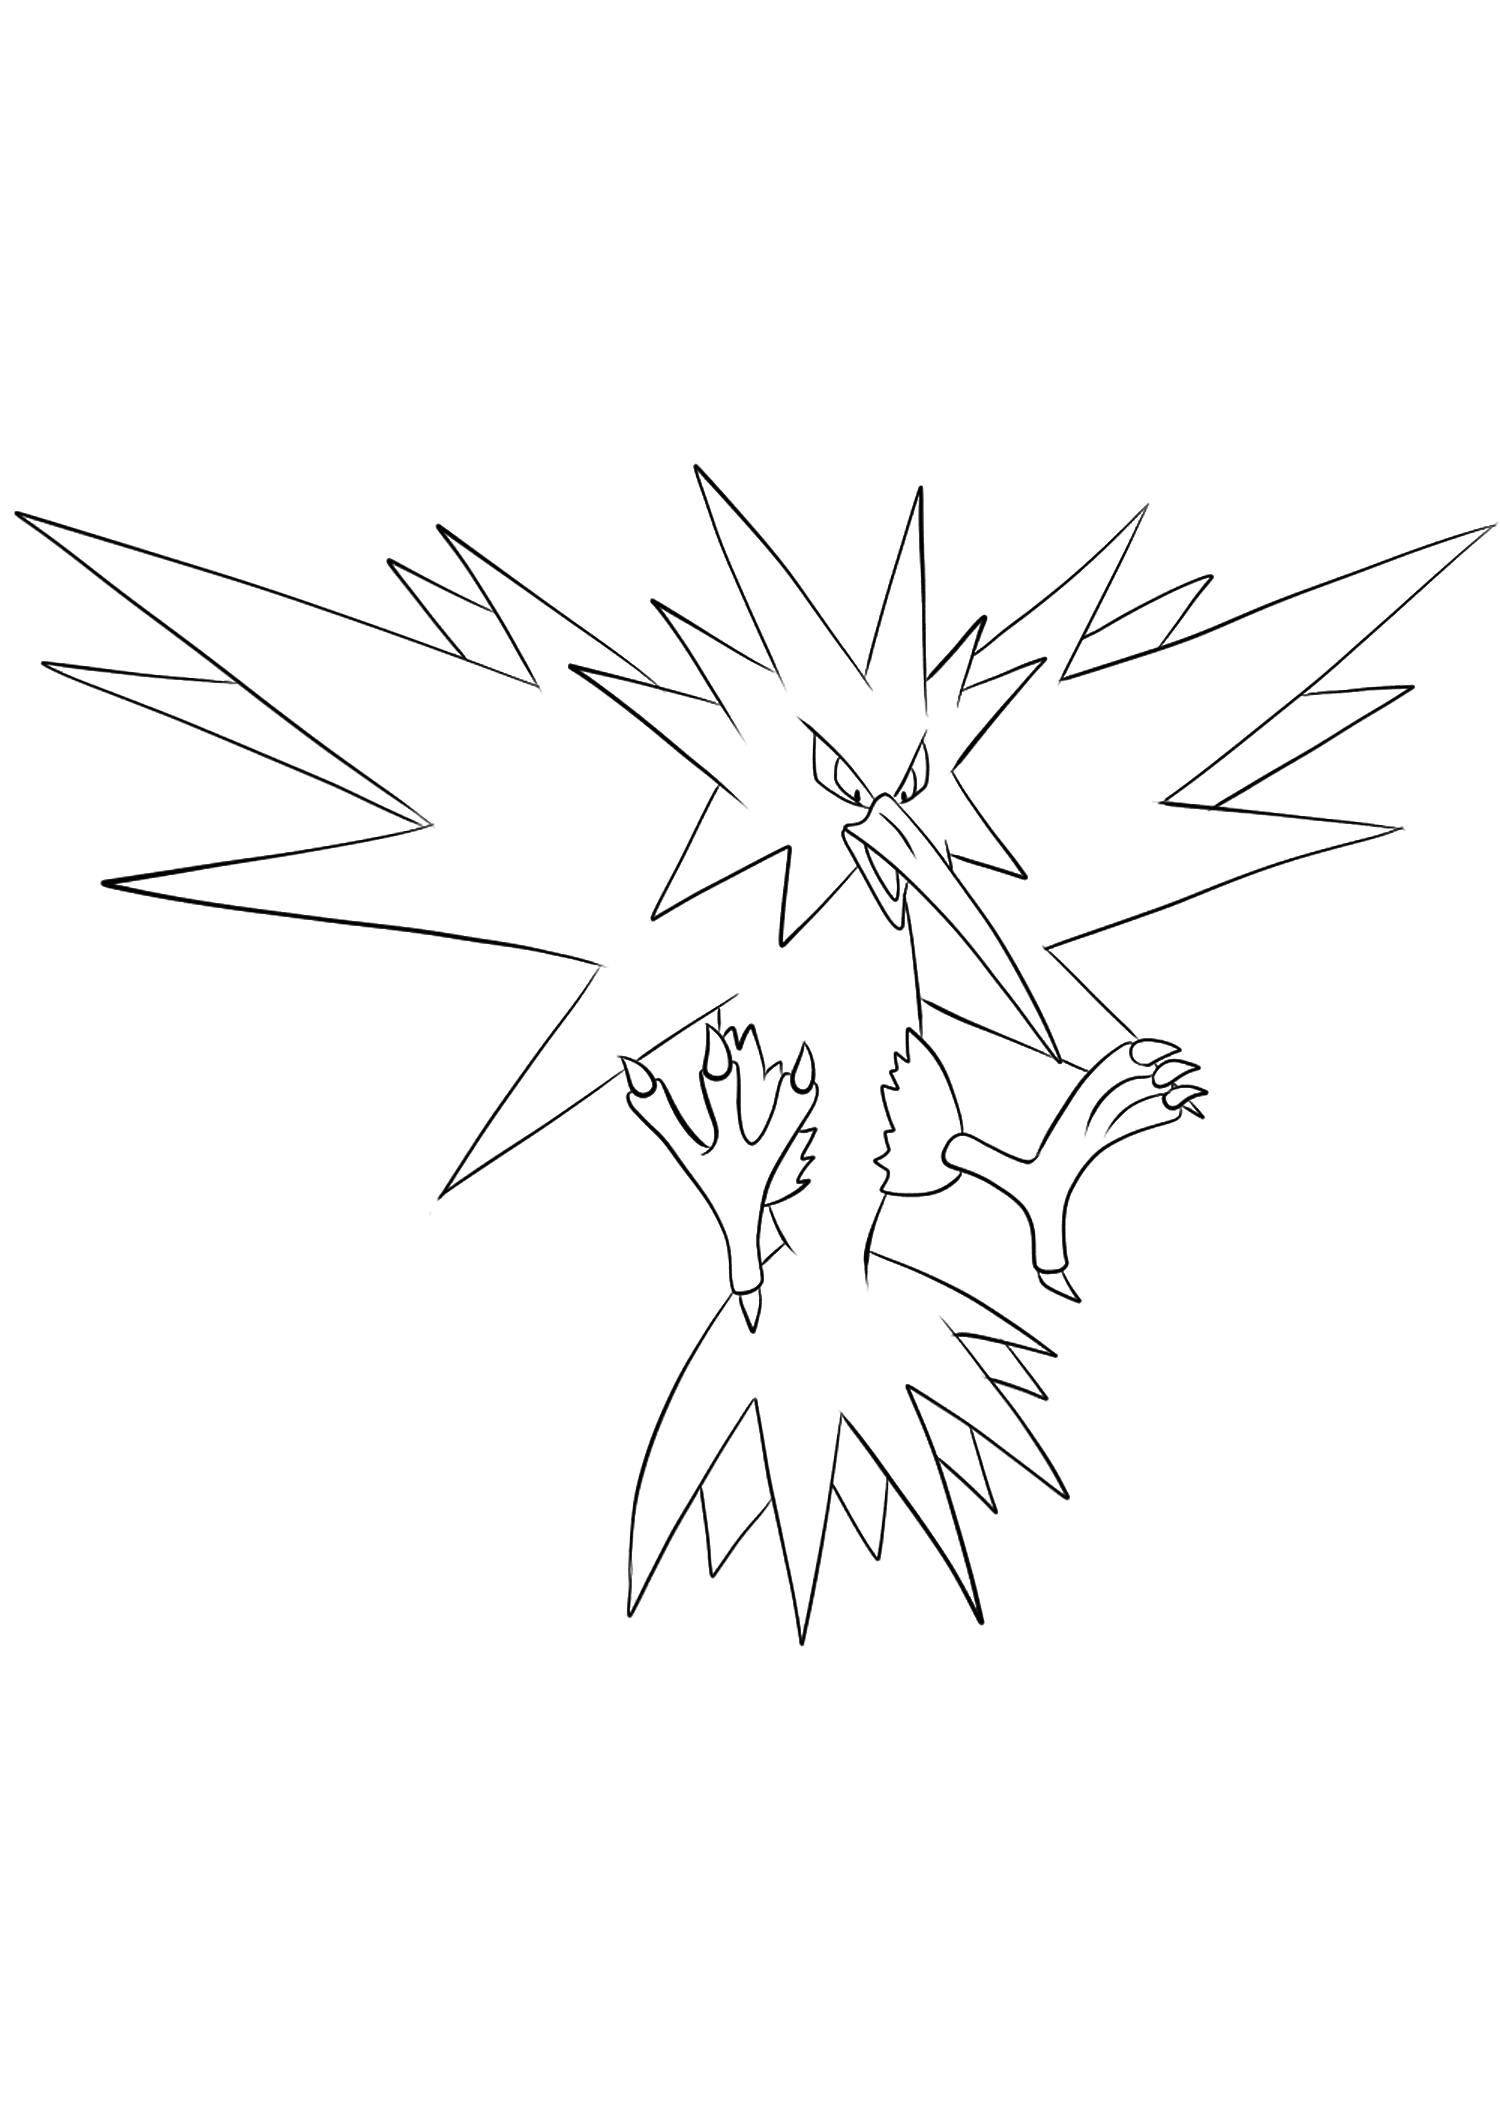 Zapdos Coloring page   Coloring pages, Pokemon coloring